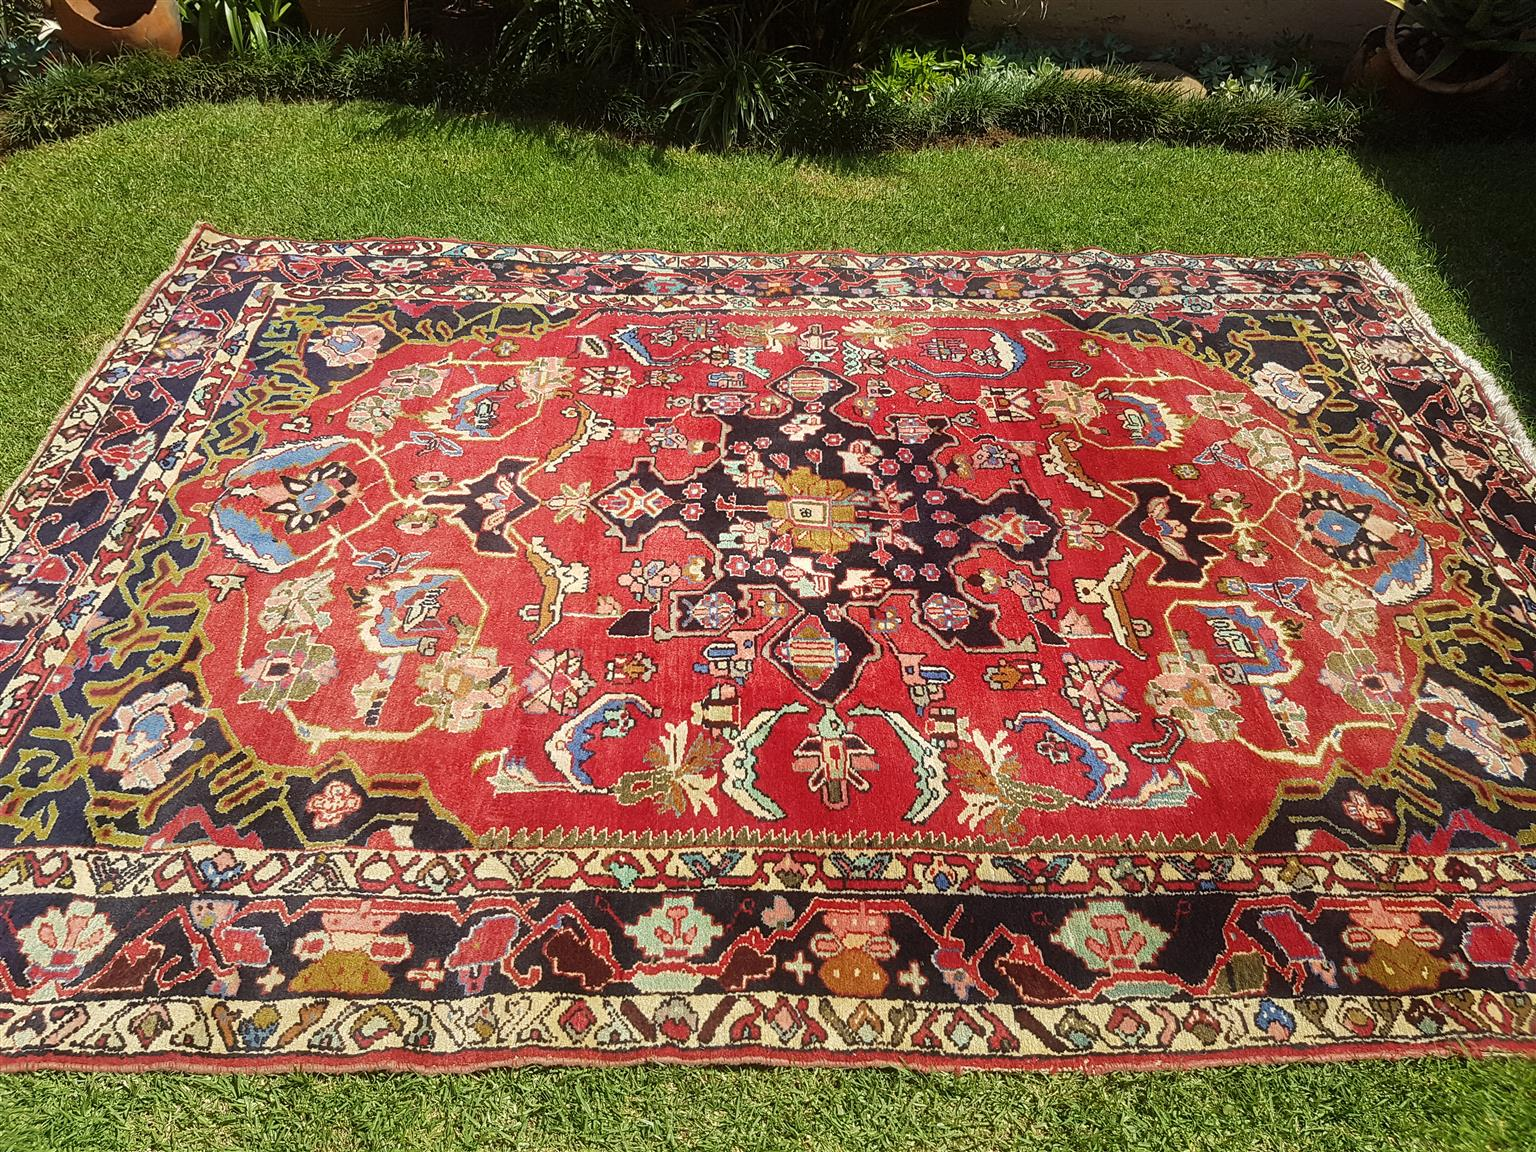 Persian rug, bakhit origin 3160mmx2160mm